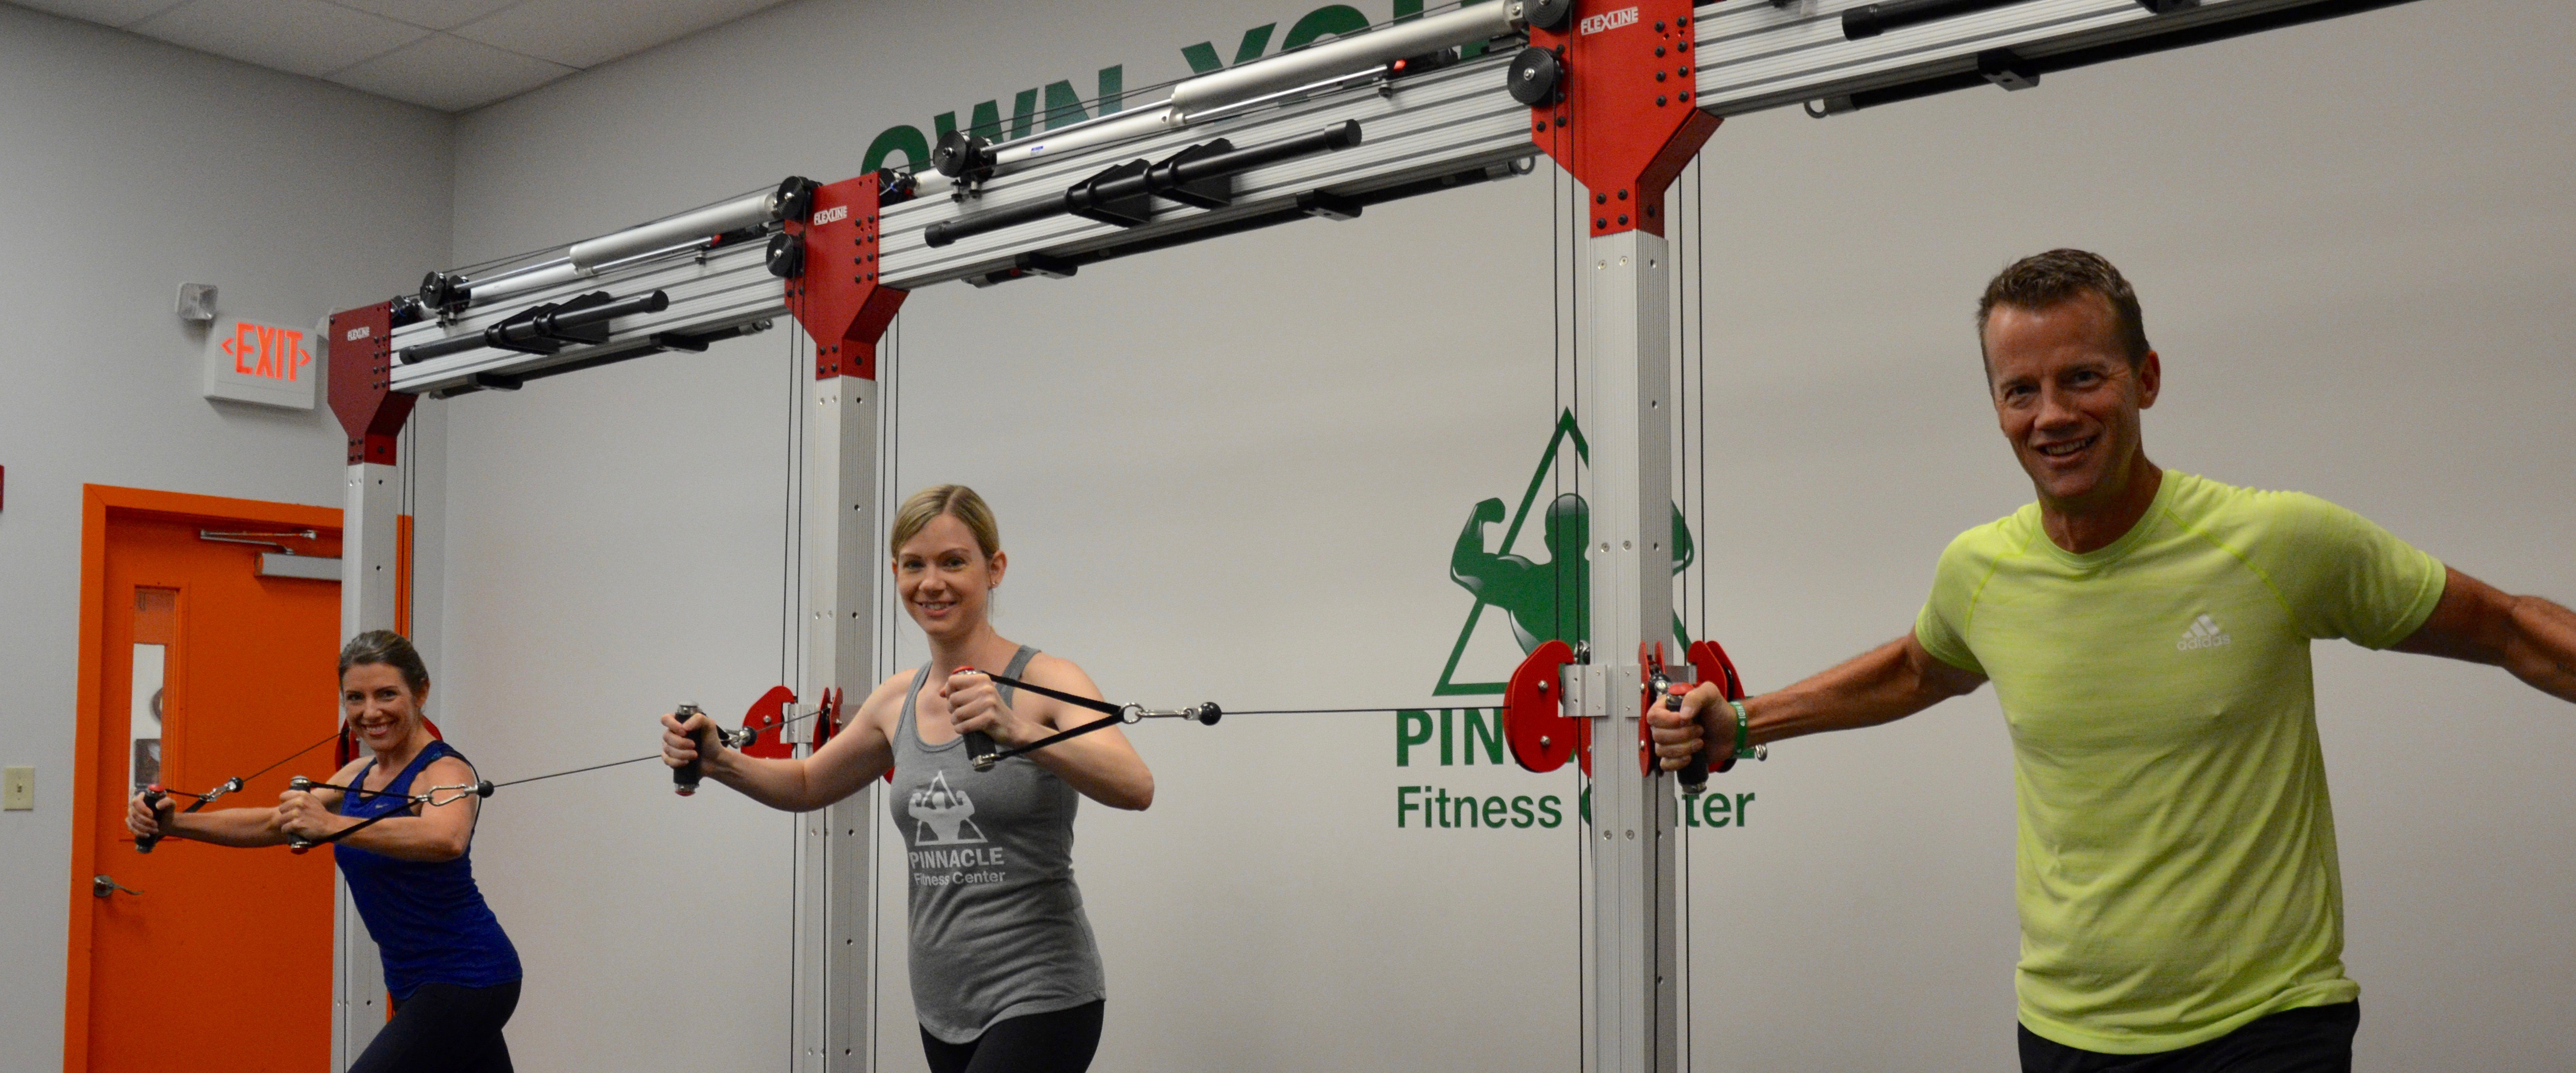 Pinnacle Fitness Center - Decatur & Smyrna - Atlanta, GA